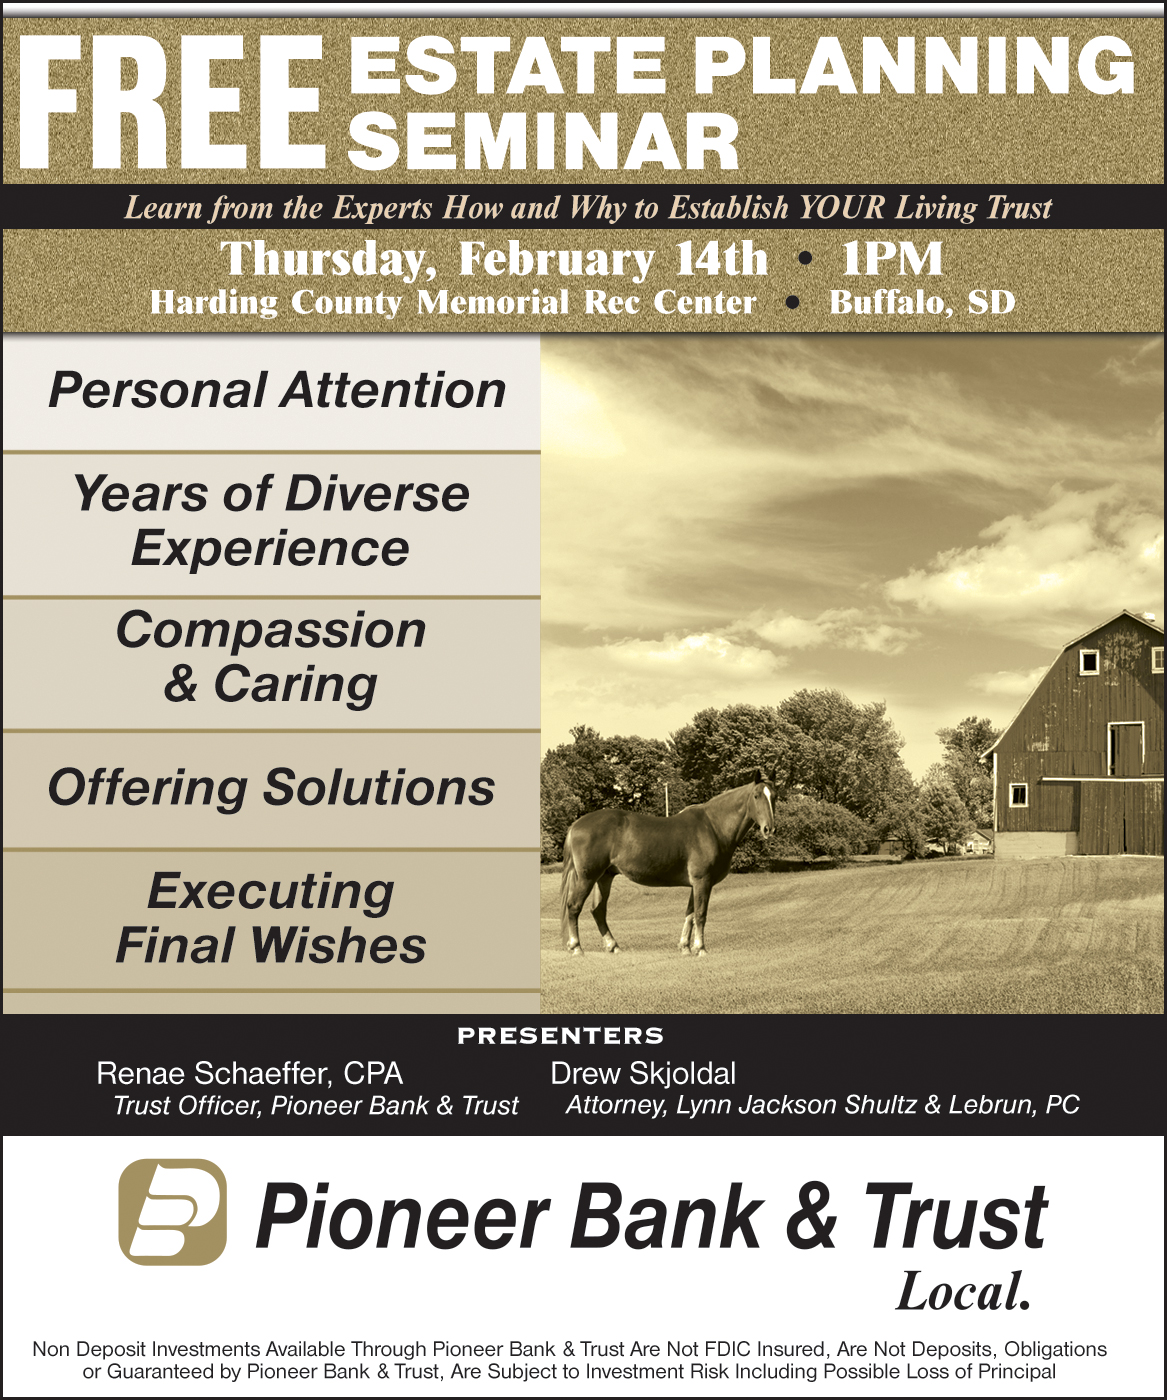 Learn from the experts how and why to establish your living trust. Thursday, February 14th 1pm. Harding County Memorial Rec Center. Buffalo, SD. Personal Attention. Years of diverse experience. Compassion and caring. Offering solutions. Executing Final Wishes. Presenters: Renae Schaeffer, CPA. Trust Officer, Pioneer Bank and Trust. Drew Skjoldal. Attorney, Lynn Jackson Shultz and Lebrun, PC. Non deposit investments available through Pioneer Bank and Trust are not FDIC insured, are not deposits, obligations or guaranteed by pioneer bank and trust, are subject to investment risk including possible loss of principal